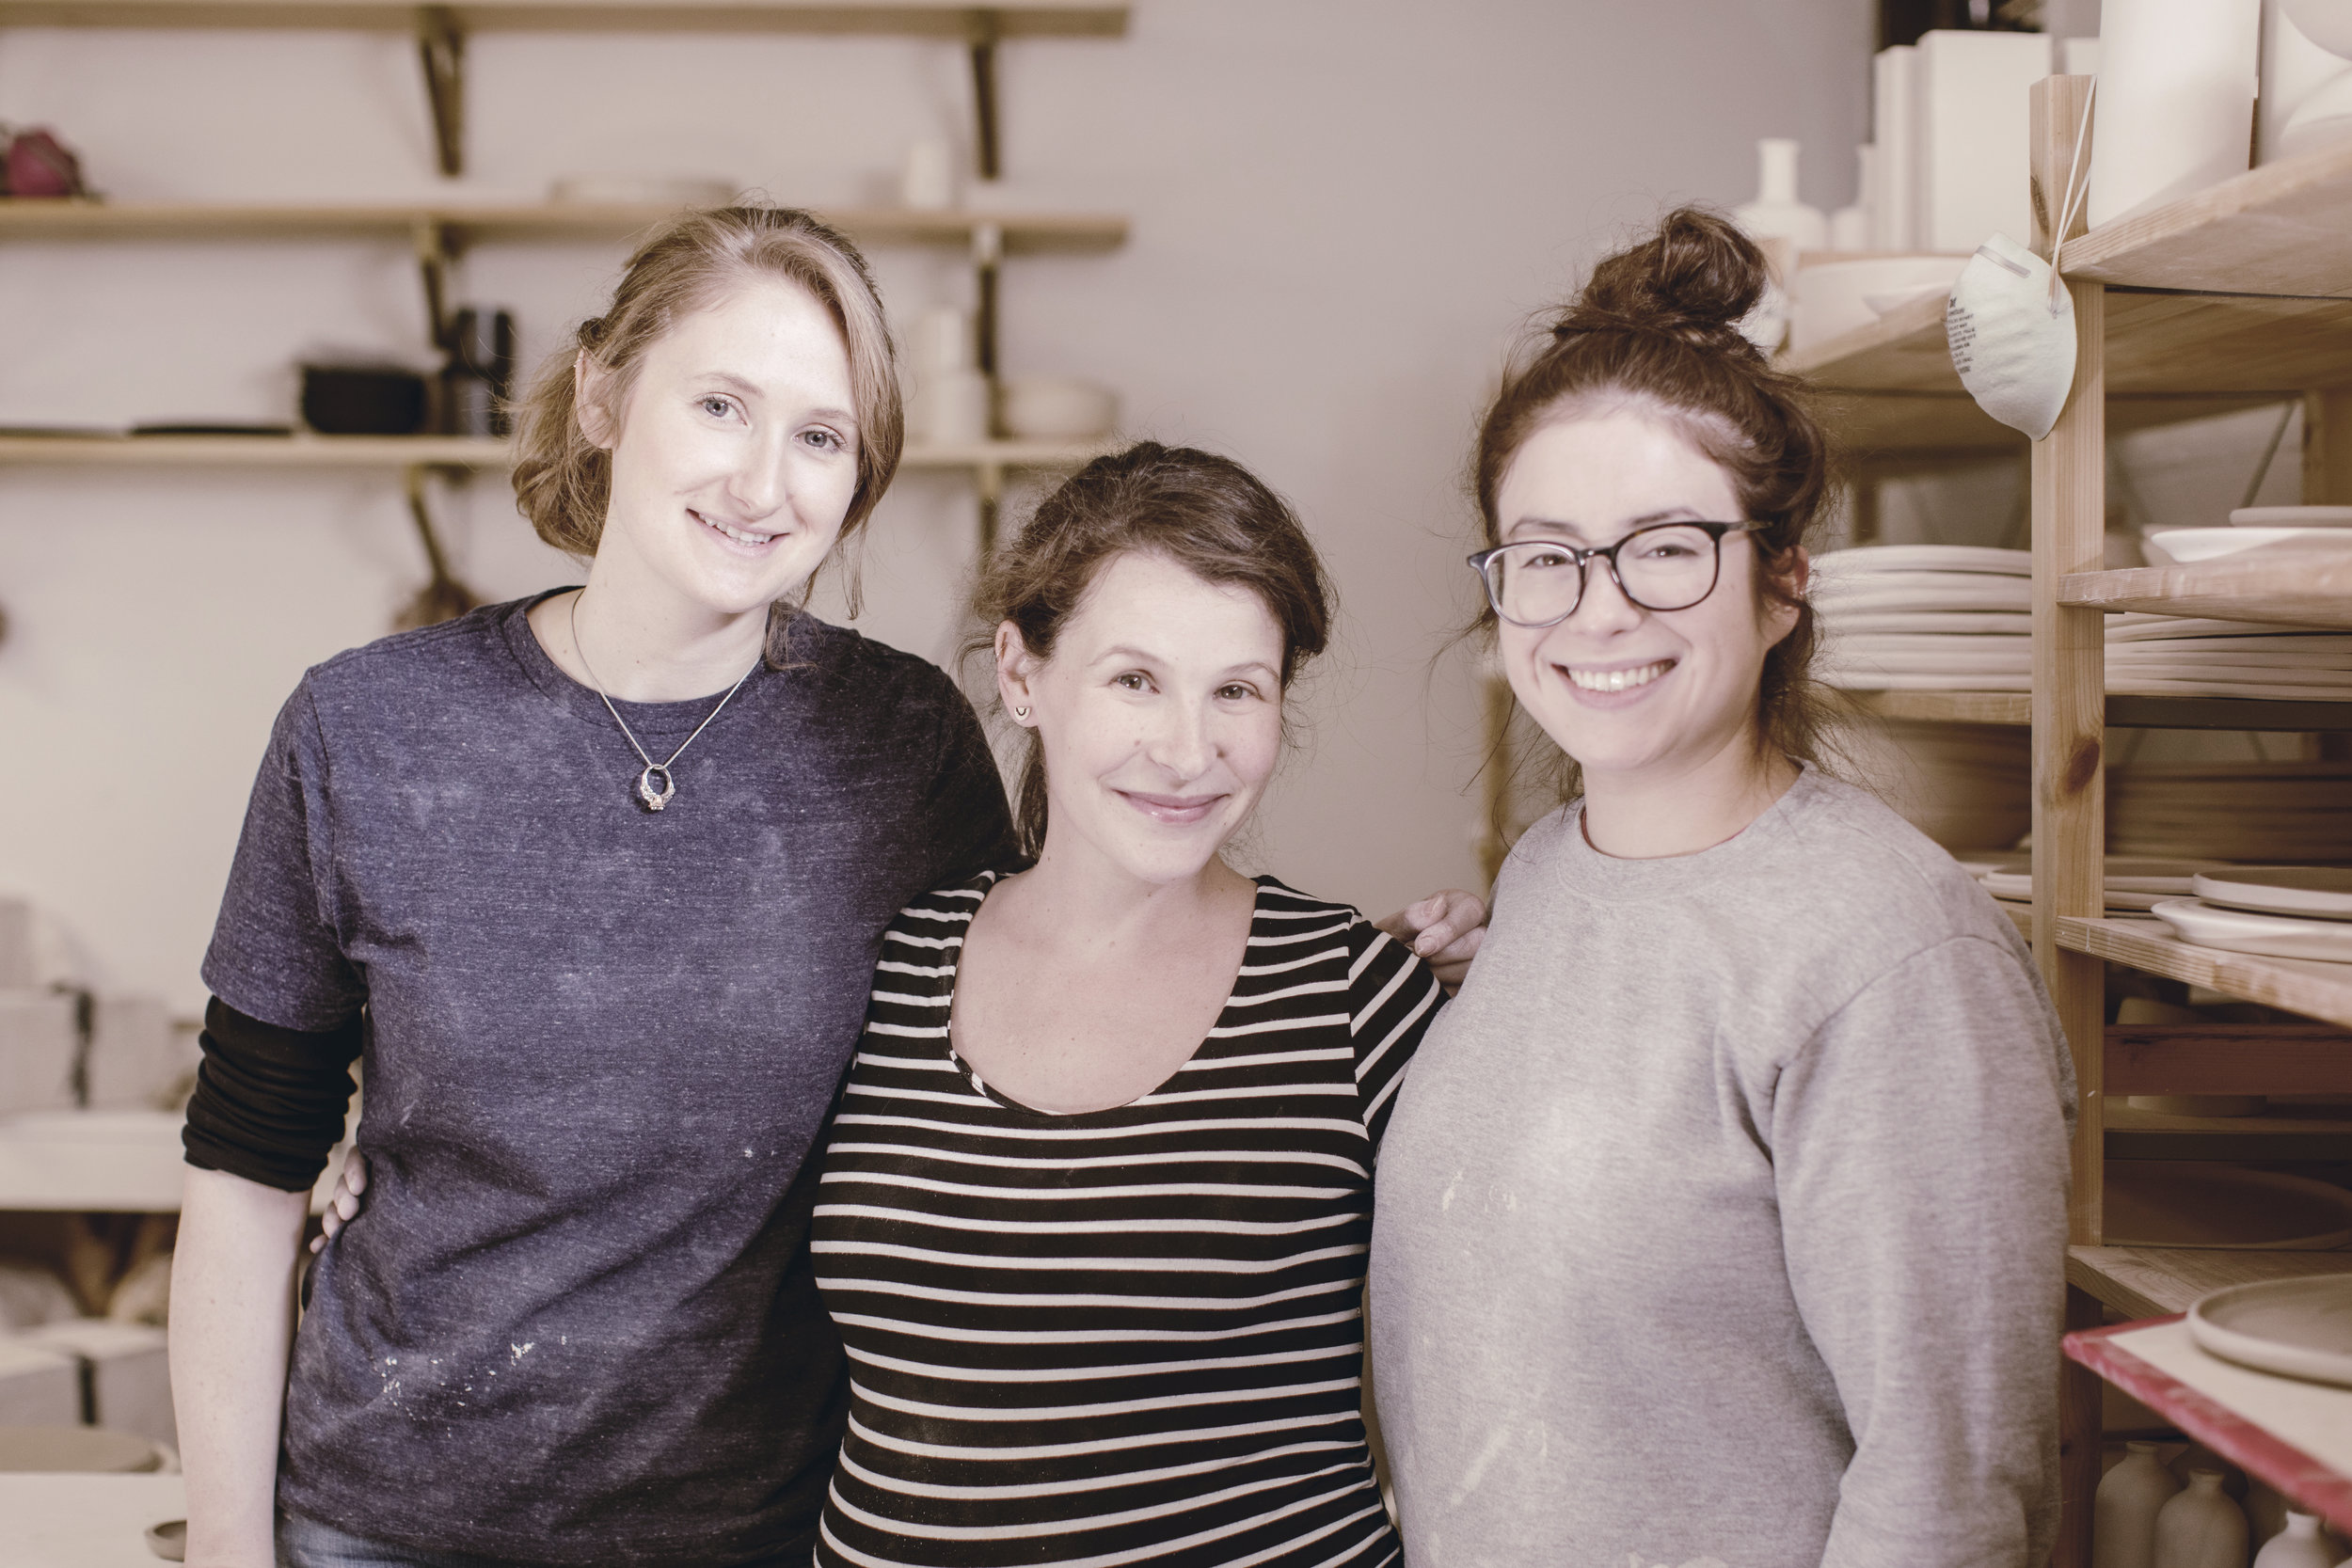 The ceramics team at Honeycomb Studio